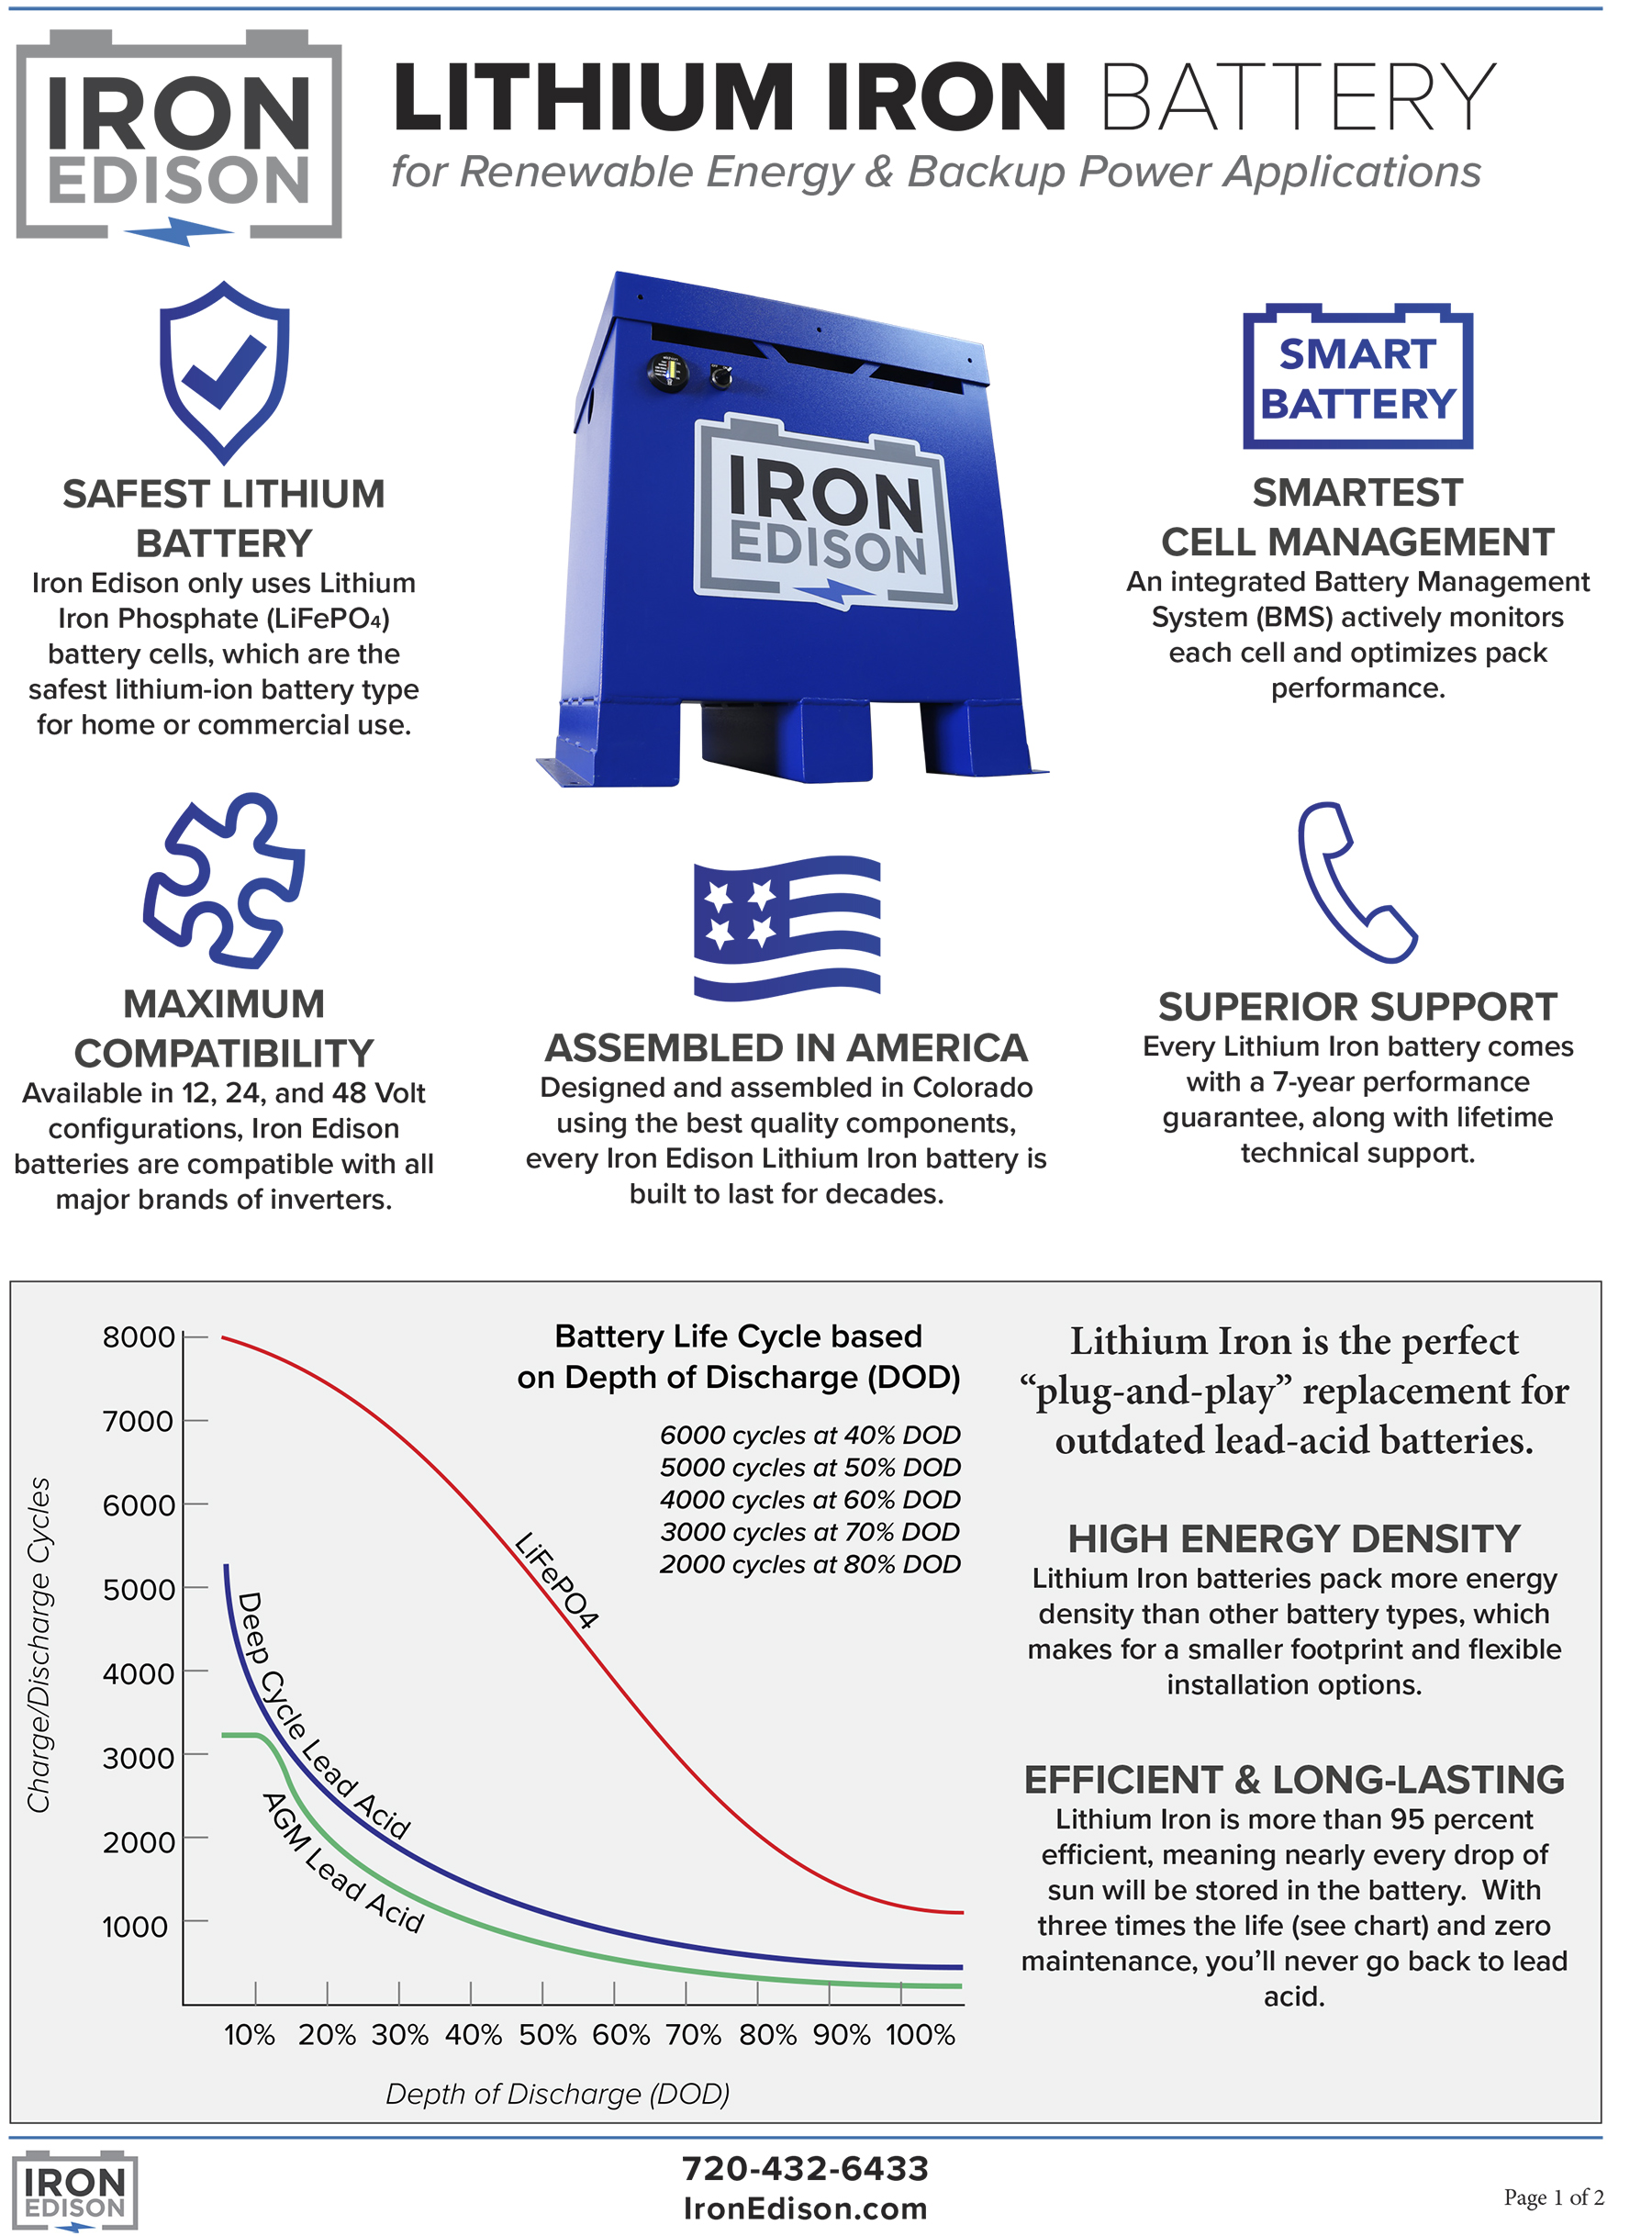 Iron Edison Lithium Iron Data Sheet 2017 v2-2